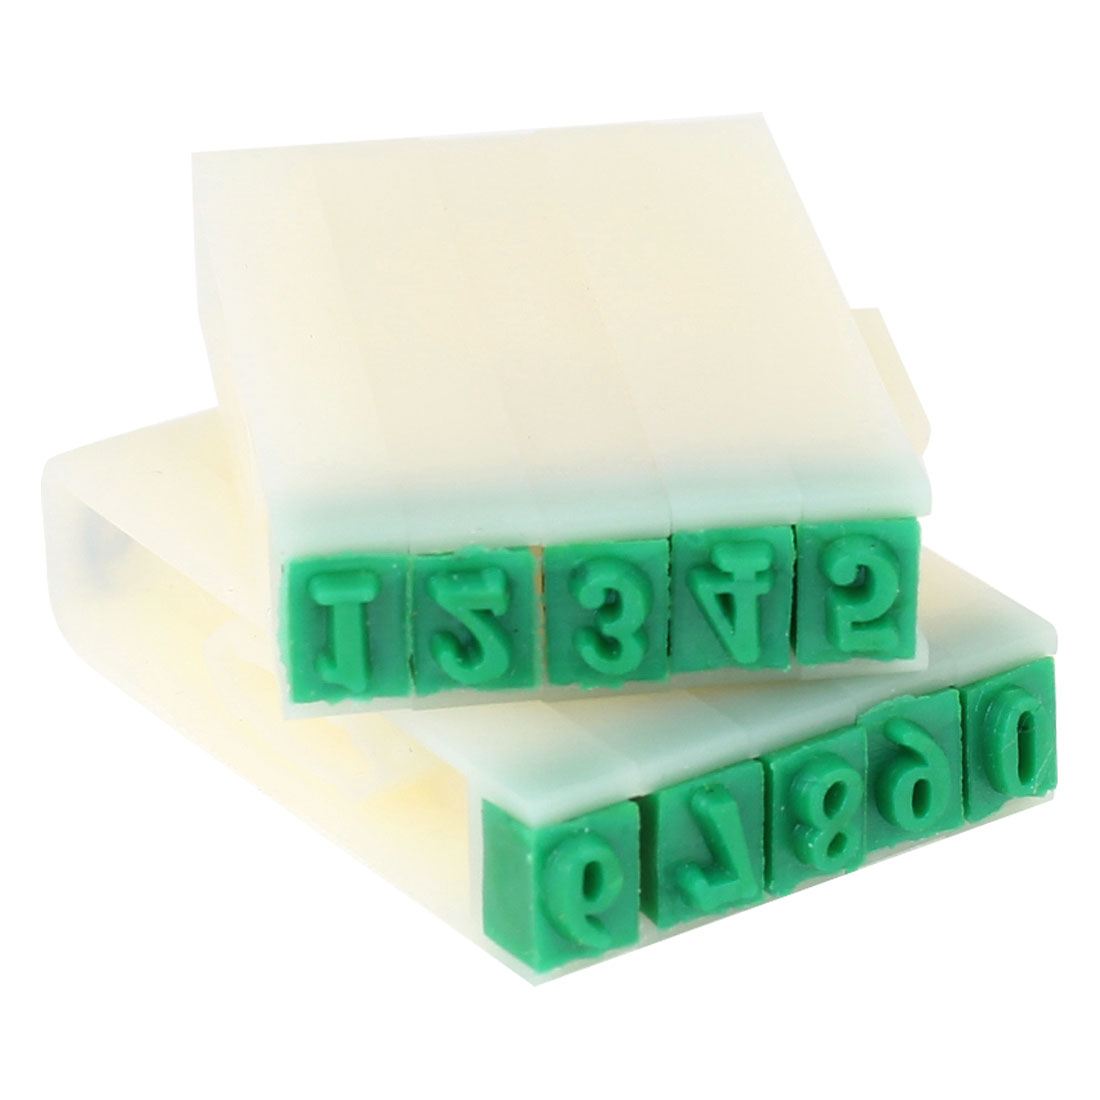 5mm x 3mm Green Rubber Head 10 Arabic Numerals Combination Stamp Set